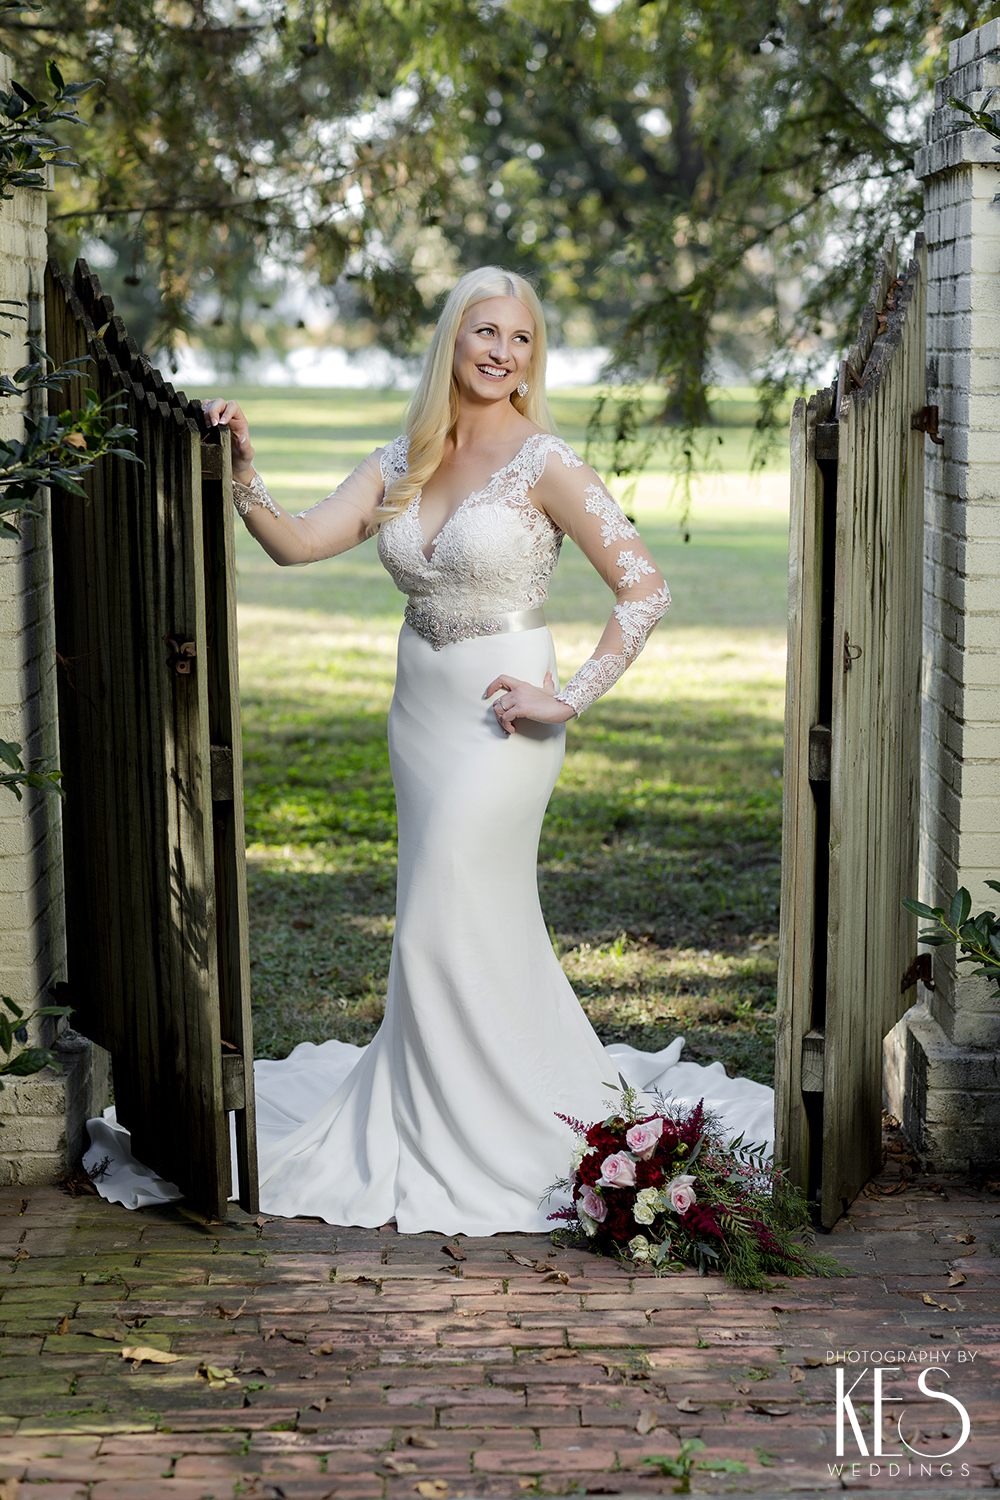 Marlsgate_Bridals_KES_Weddings_11.JPG